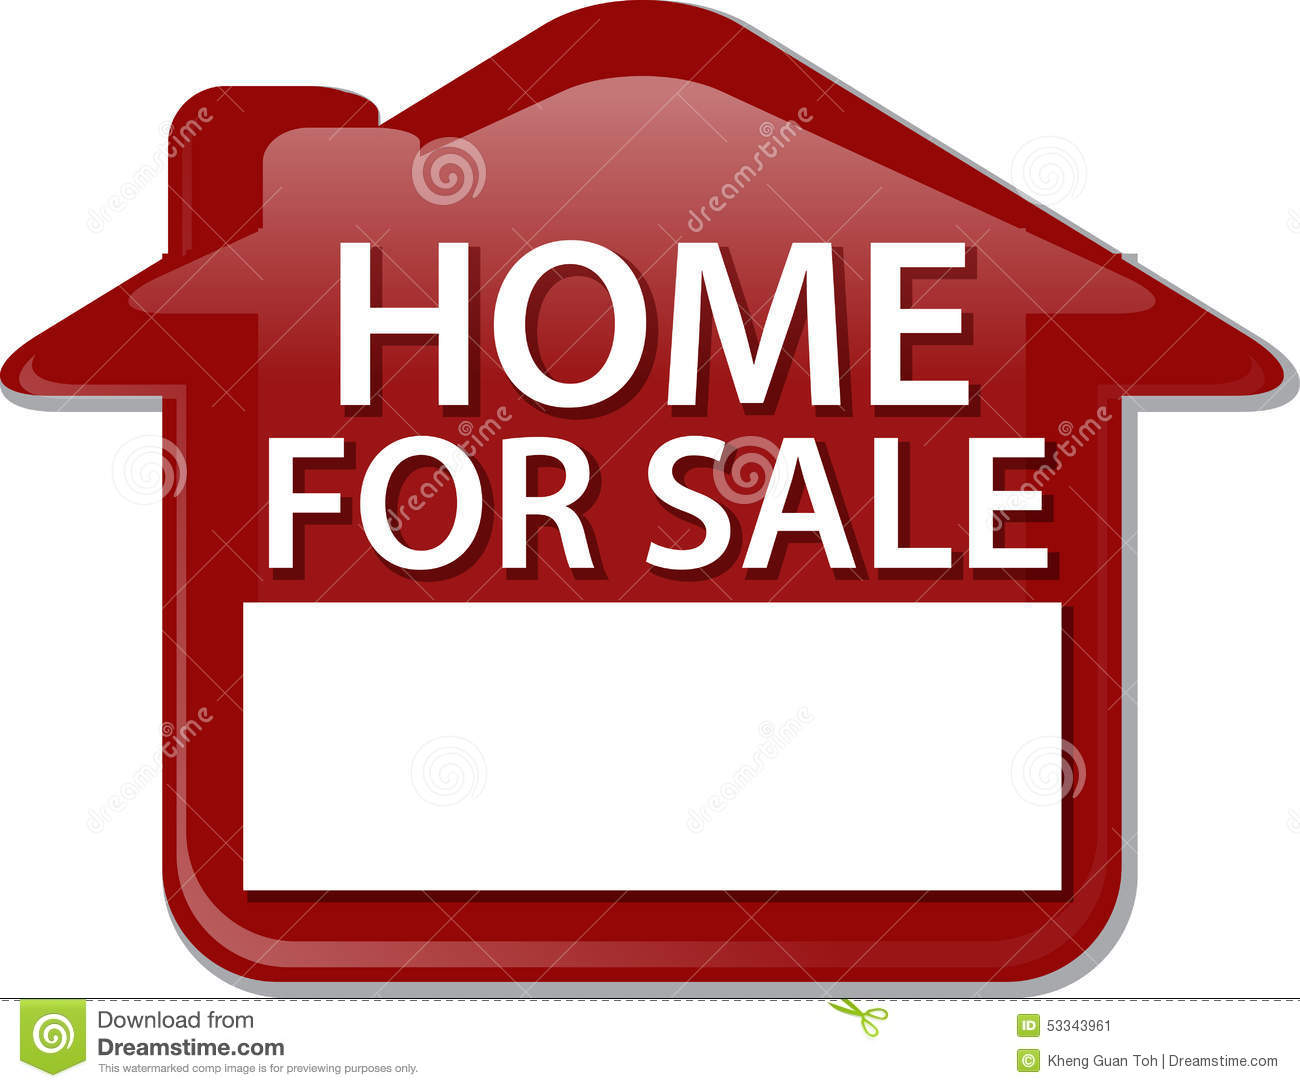 House for sale sign clipart clipground for Real art for sale